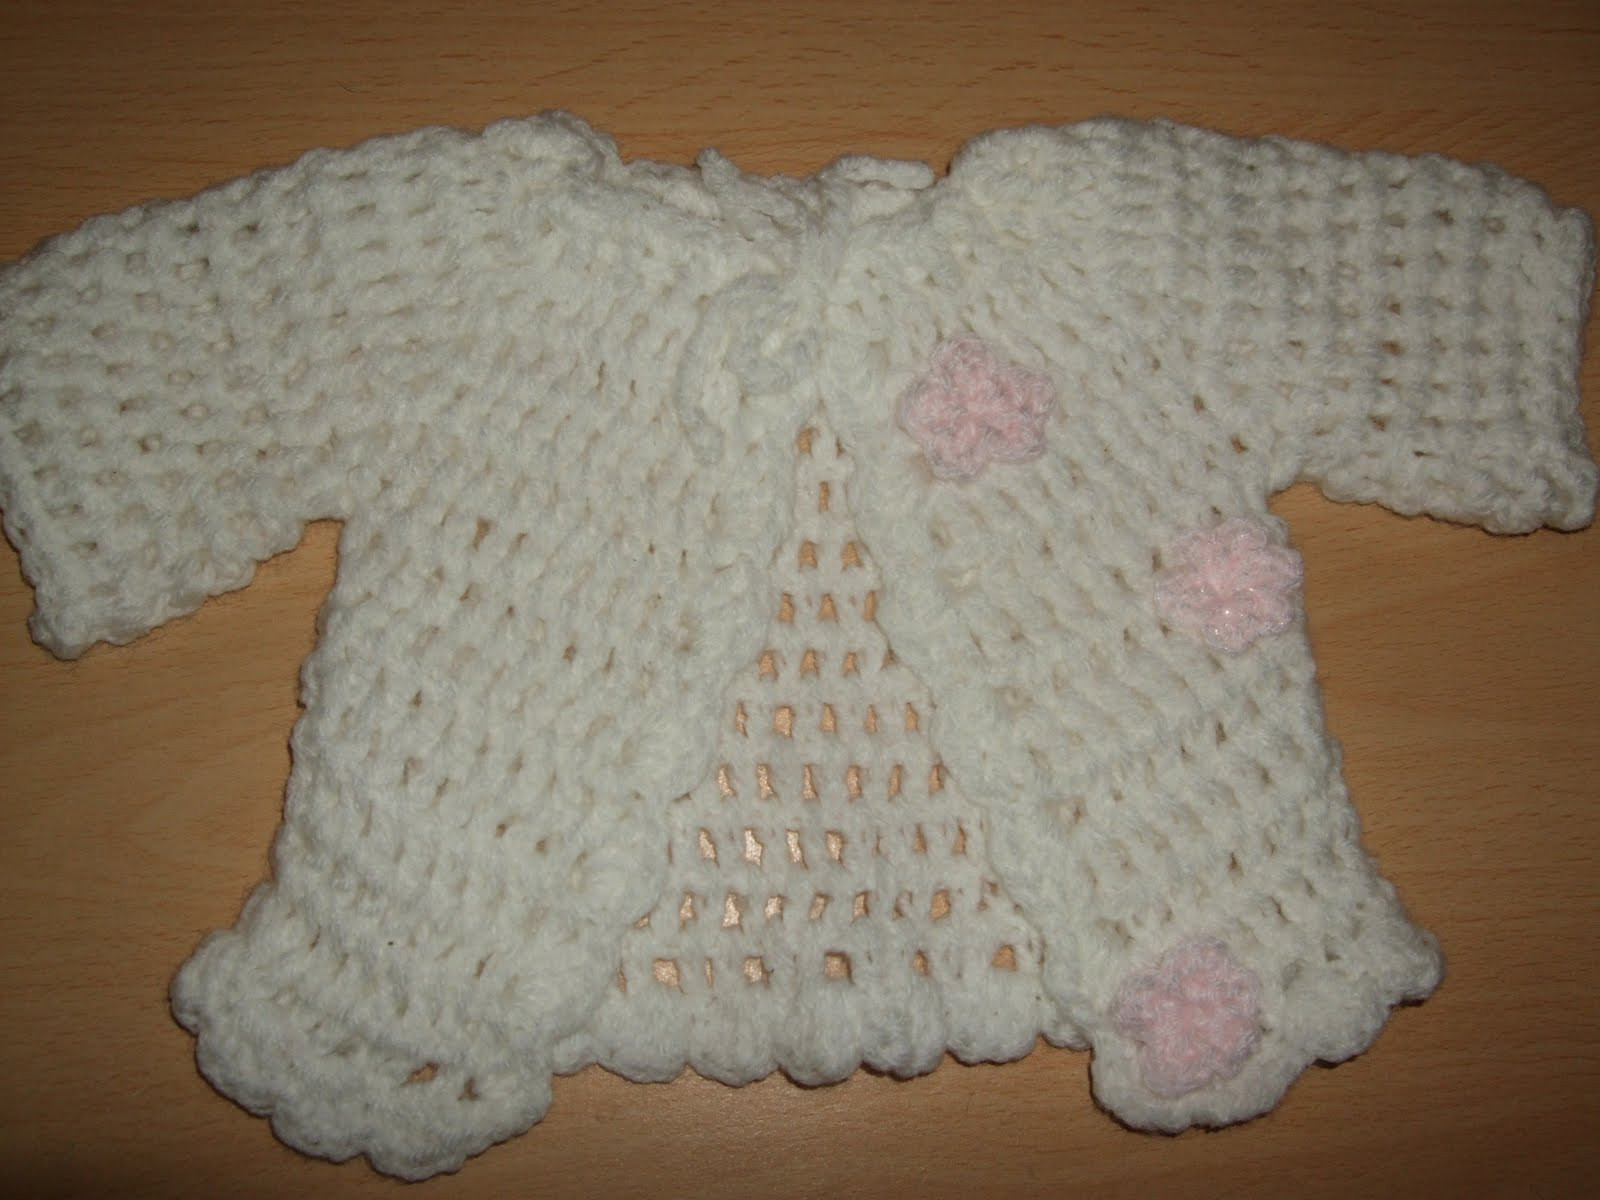 Free Crochet Patterns Baby Clothes Luxury Free Crochet Patterns for Baby Esies Dancox for Of Awesome 40 Images Free Crochet Patterns Baby Clothes